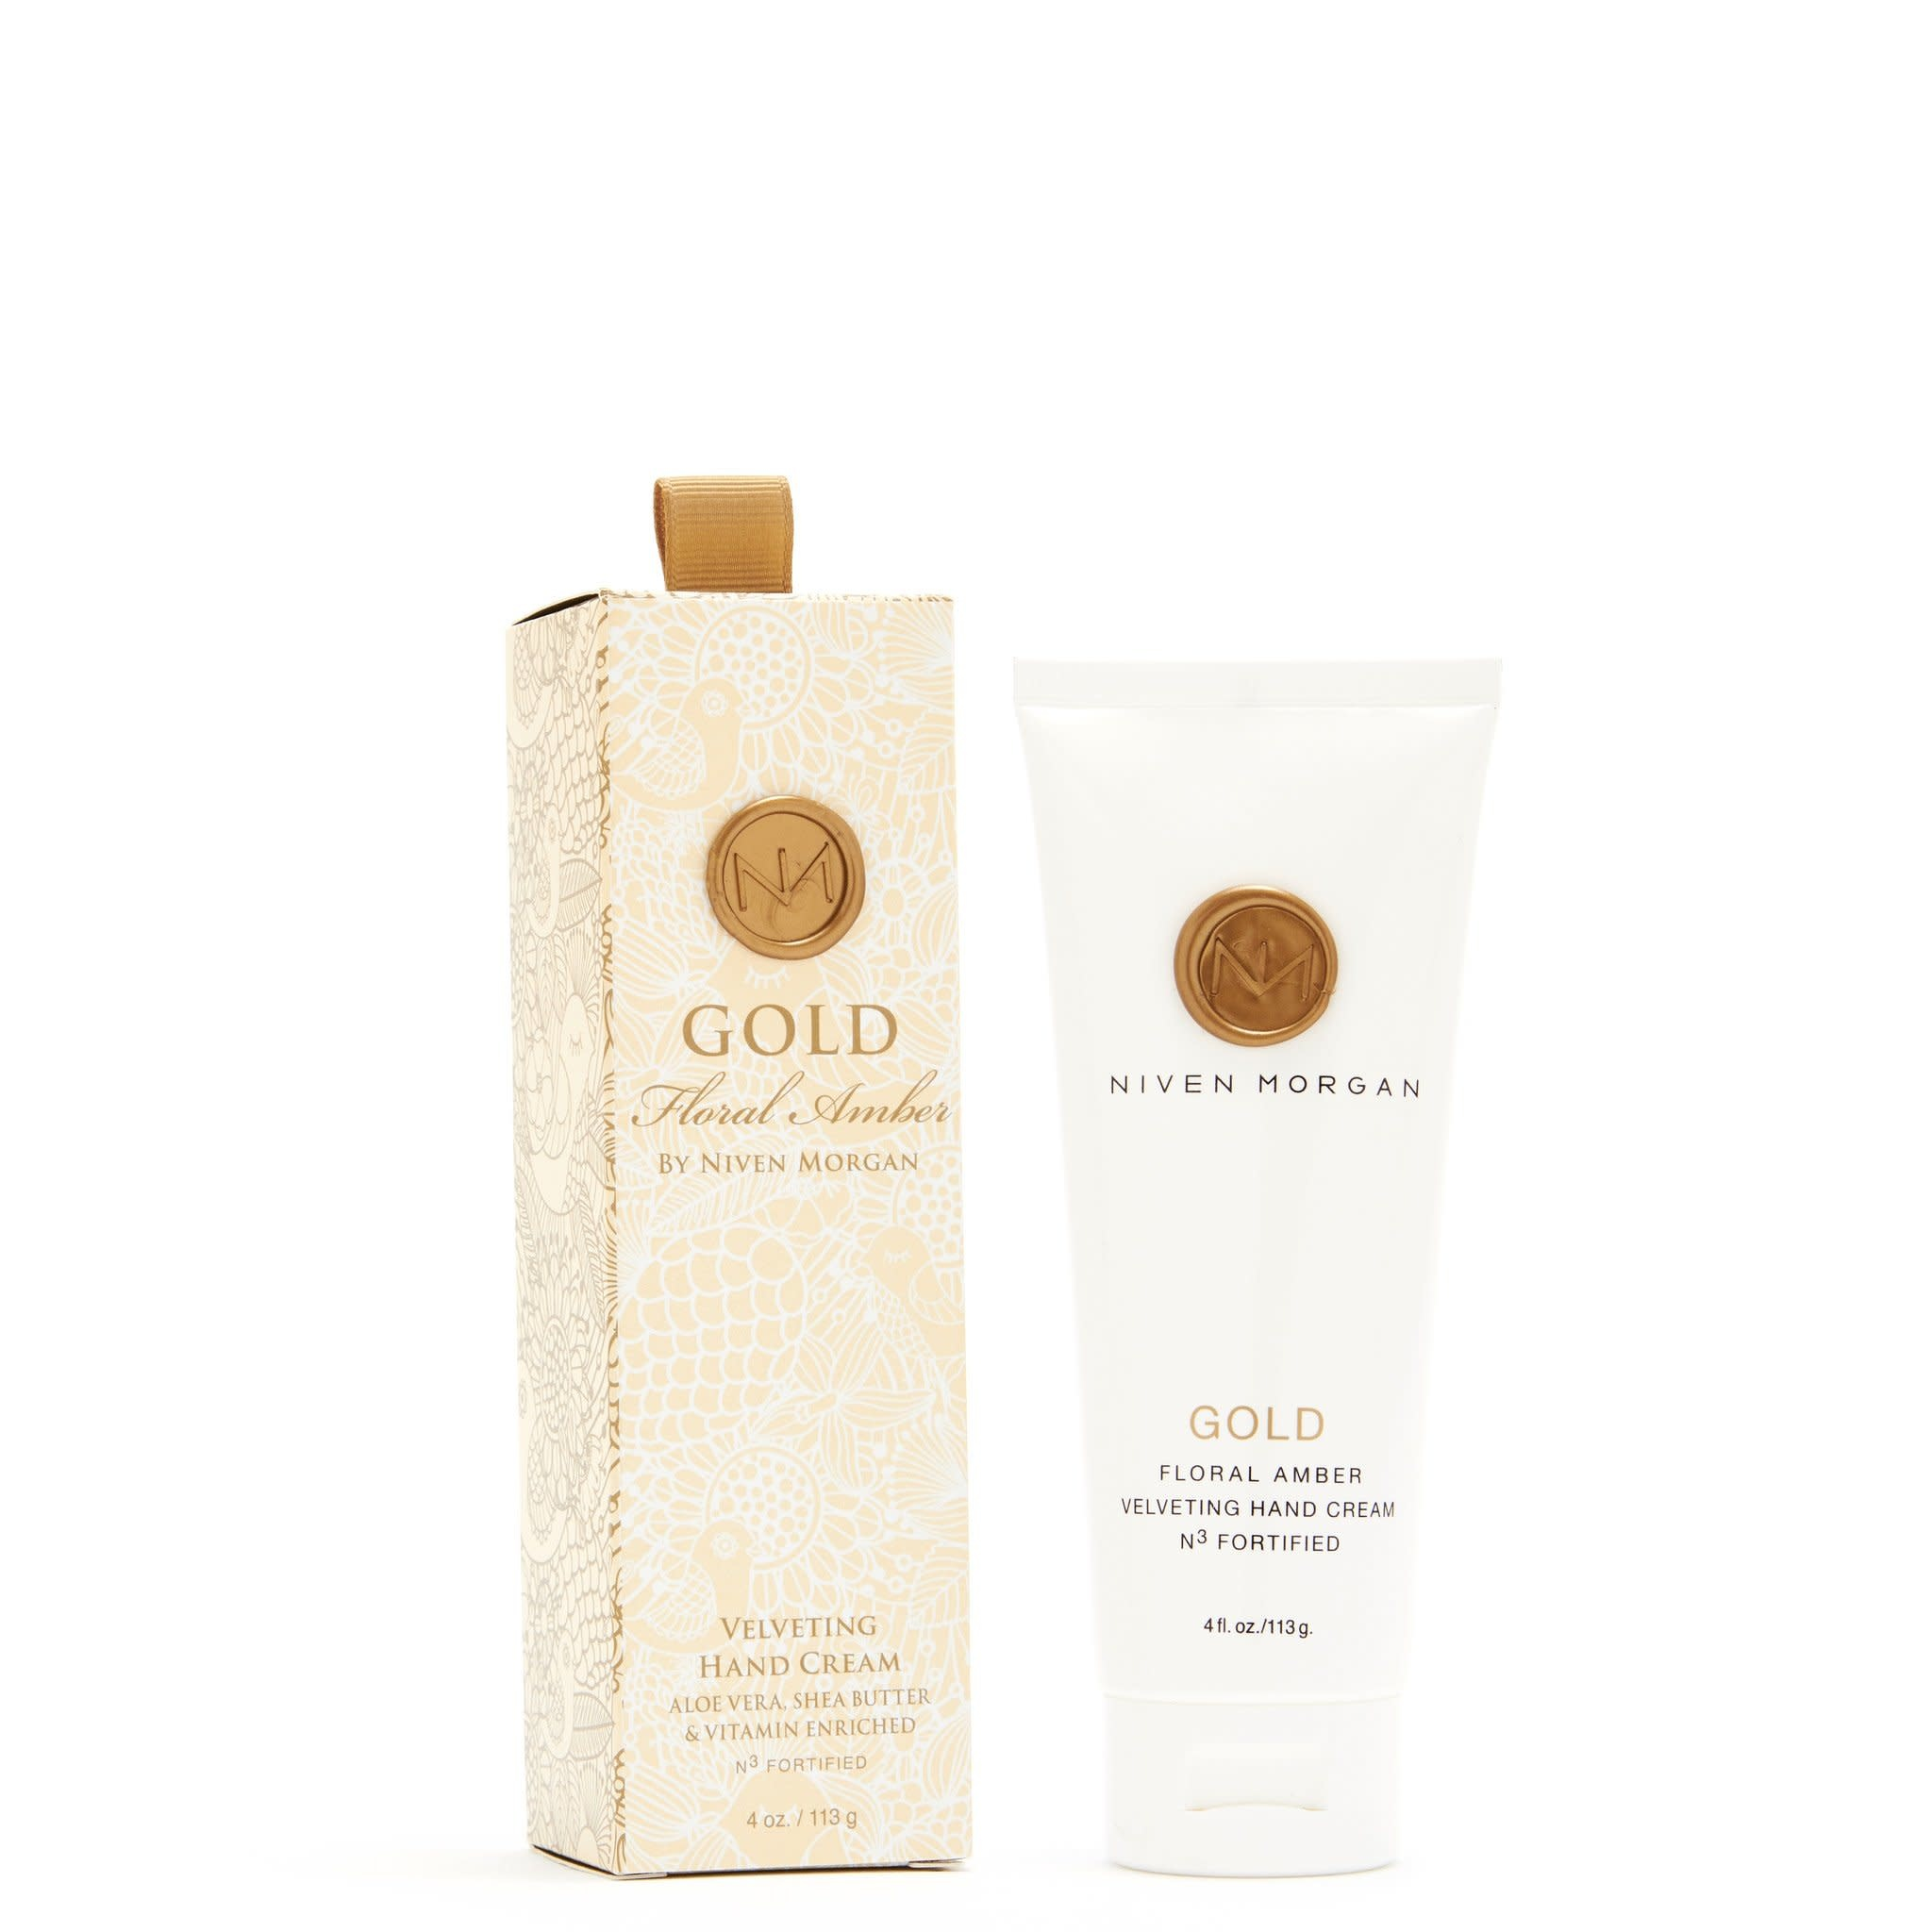 Niven Morgan Niven Morgan 4oz Hand Cream Gold